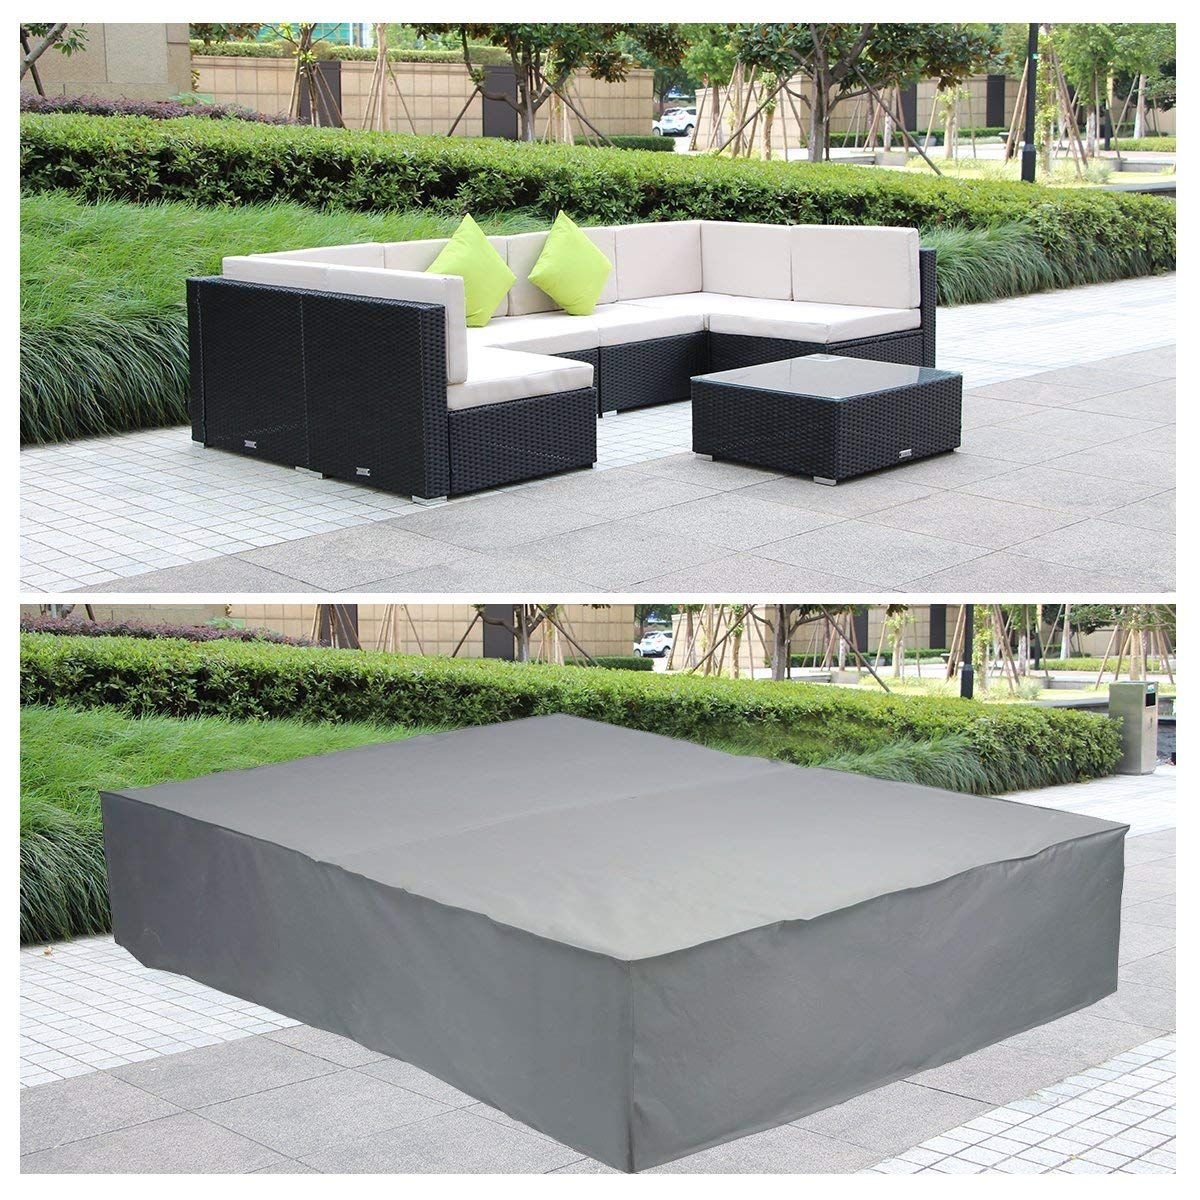 Umax Extra Large Rectangular Table Patio Furniture Covers Rattan Furniture Covers For Outdoor 7 Pcs Furniture Patio In 2020 Patio Table Patio Outdoor Furniture Covers